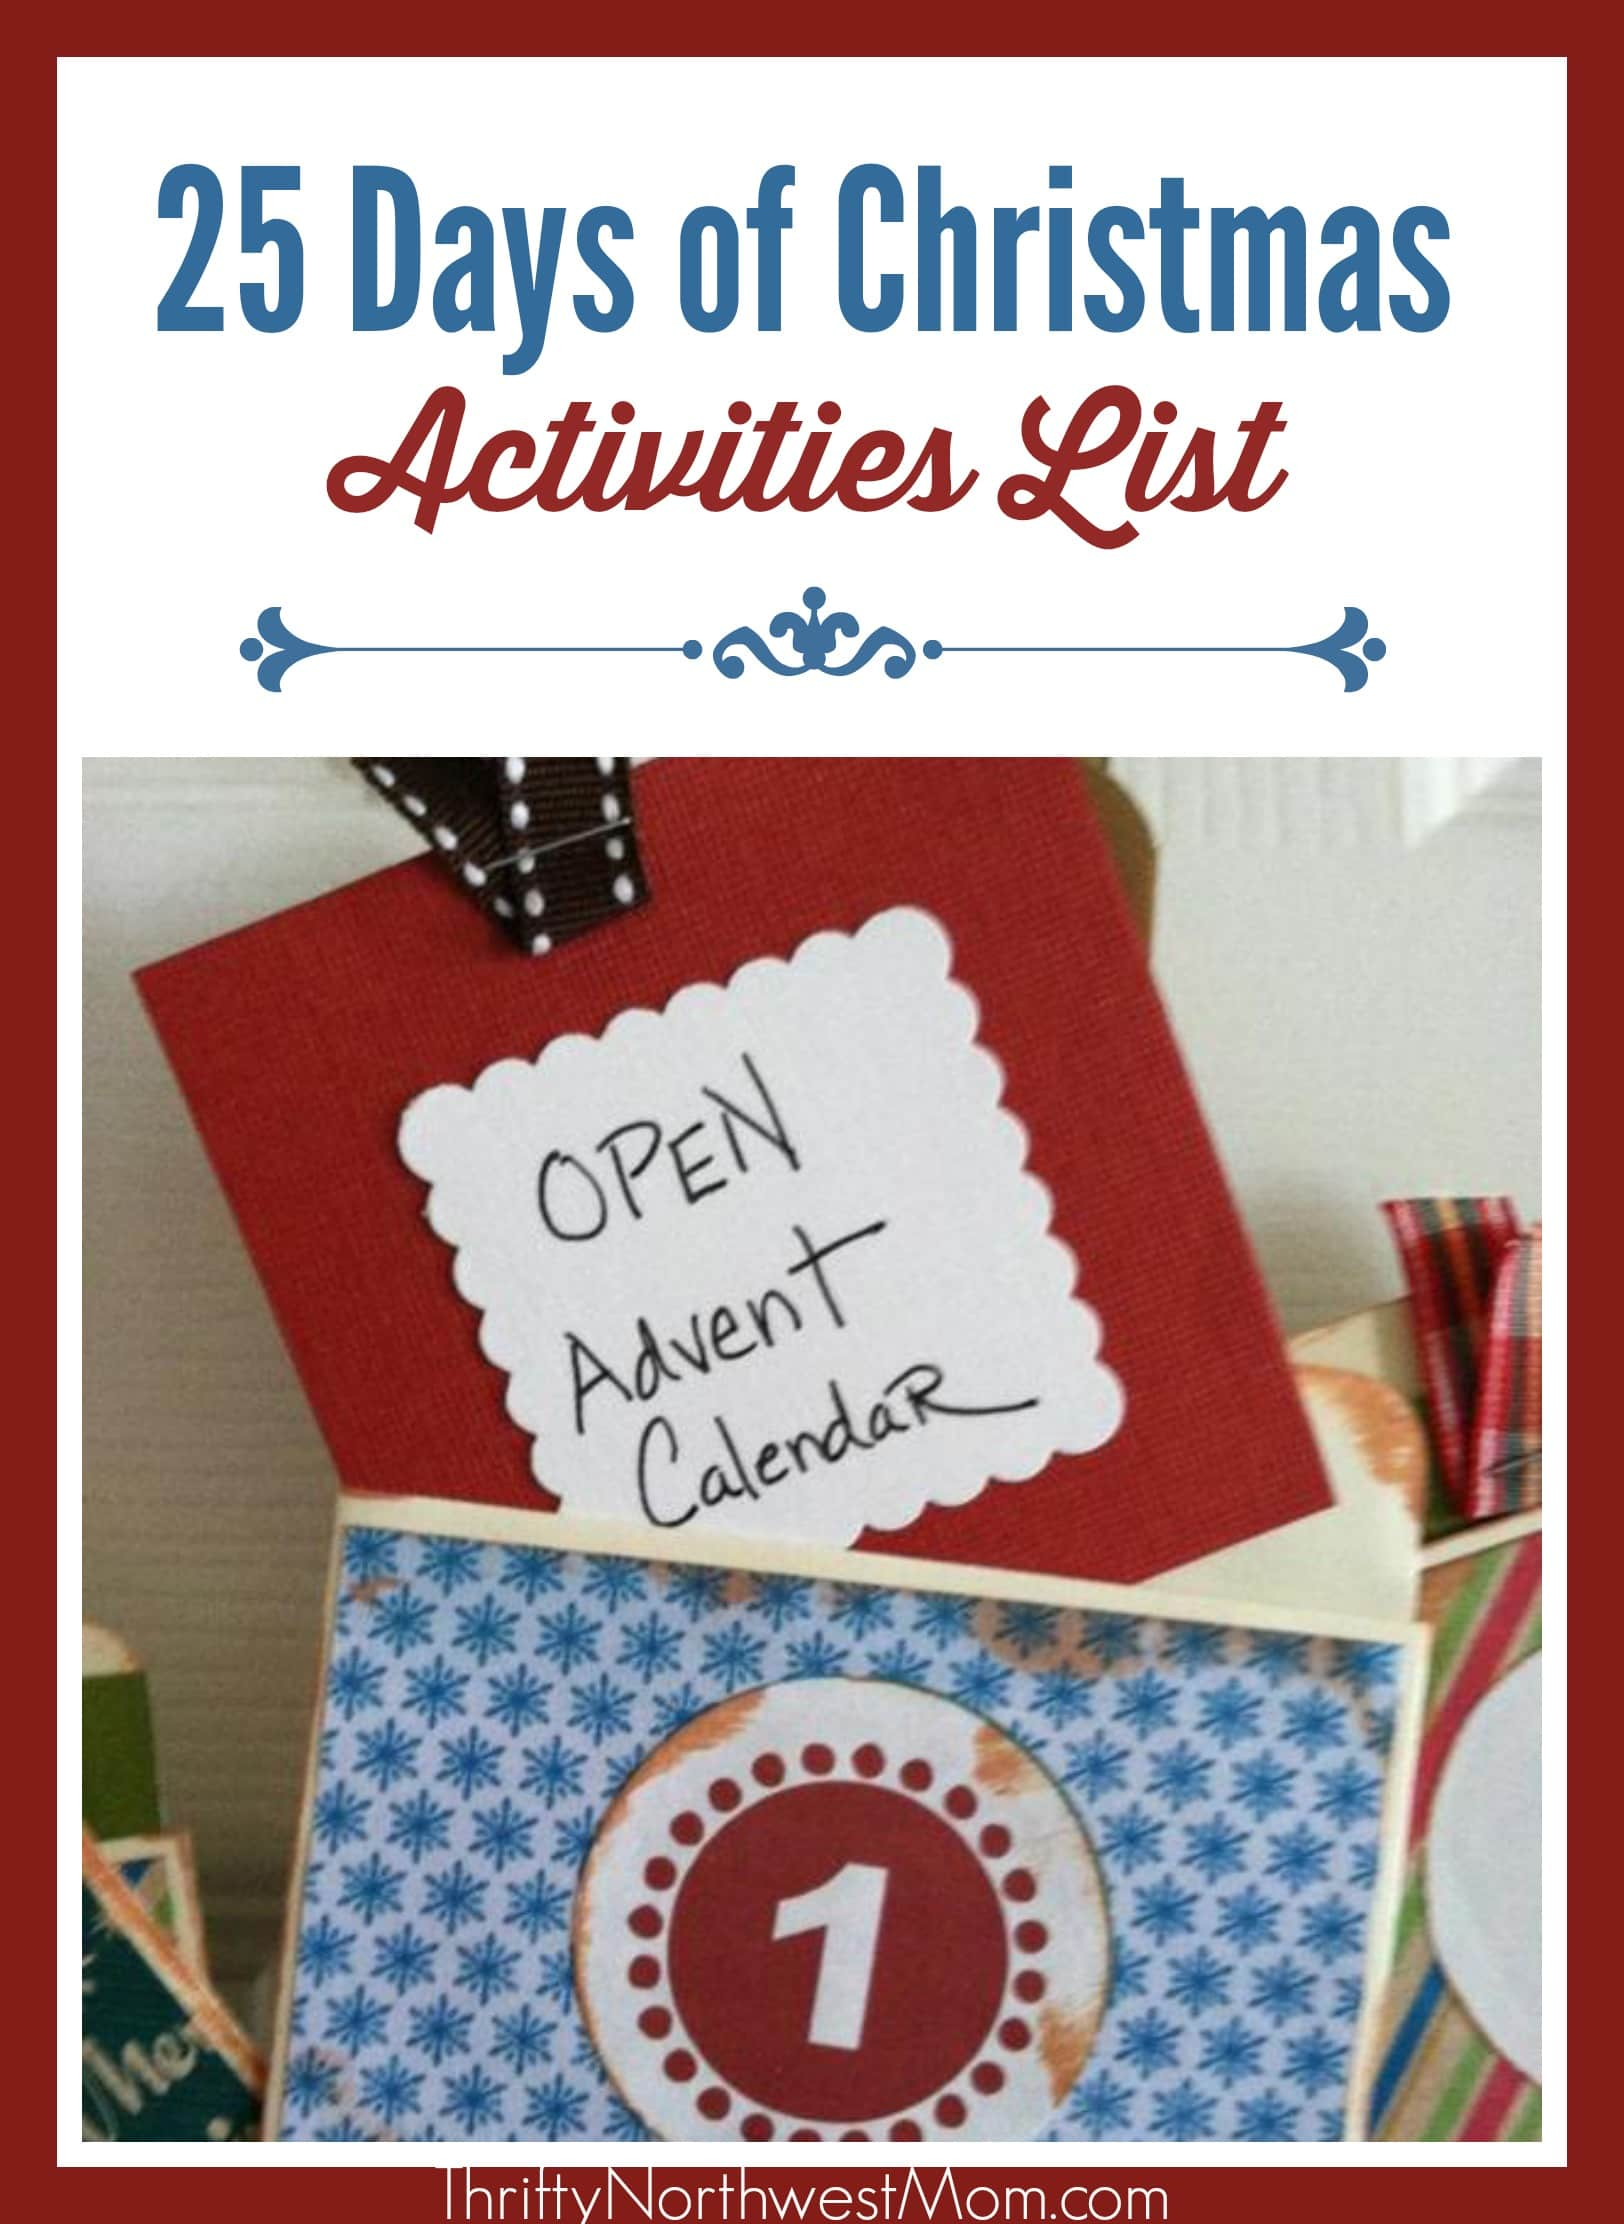 db12f335 Celebrating the 25 Days of Christmas ~ Activities List – Christmas Countdown  activities + FREE Personalized Printables!